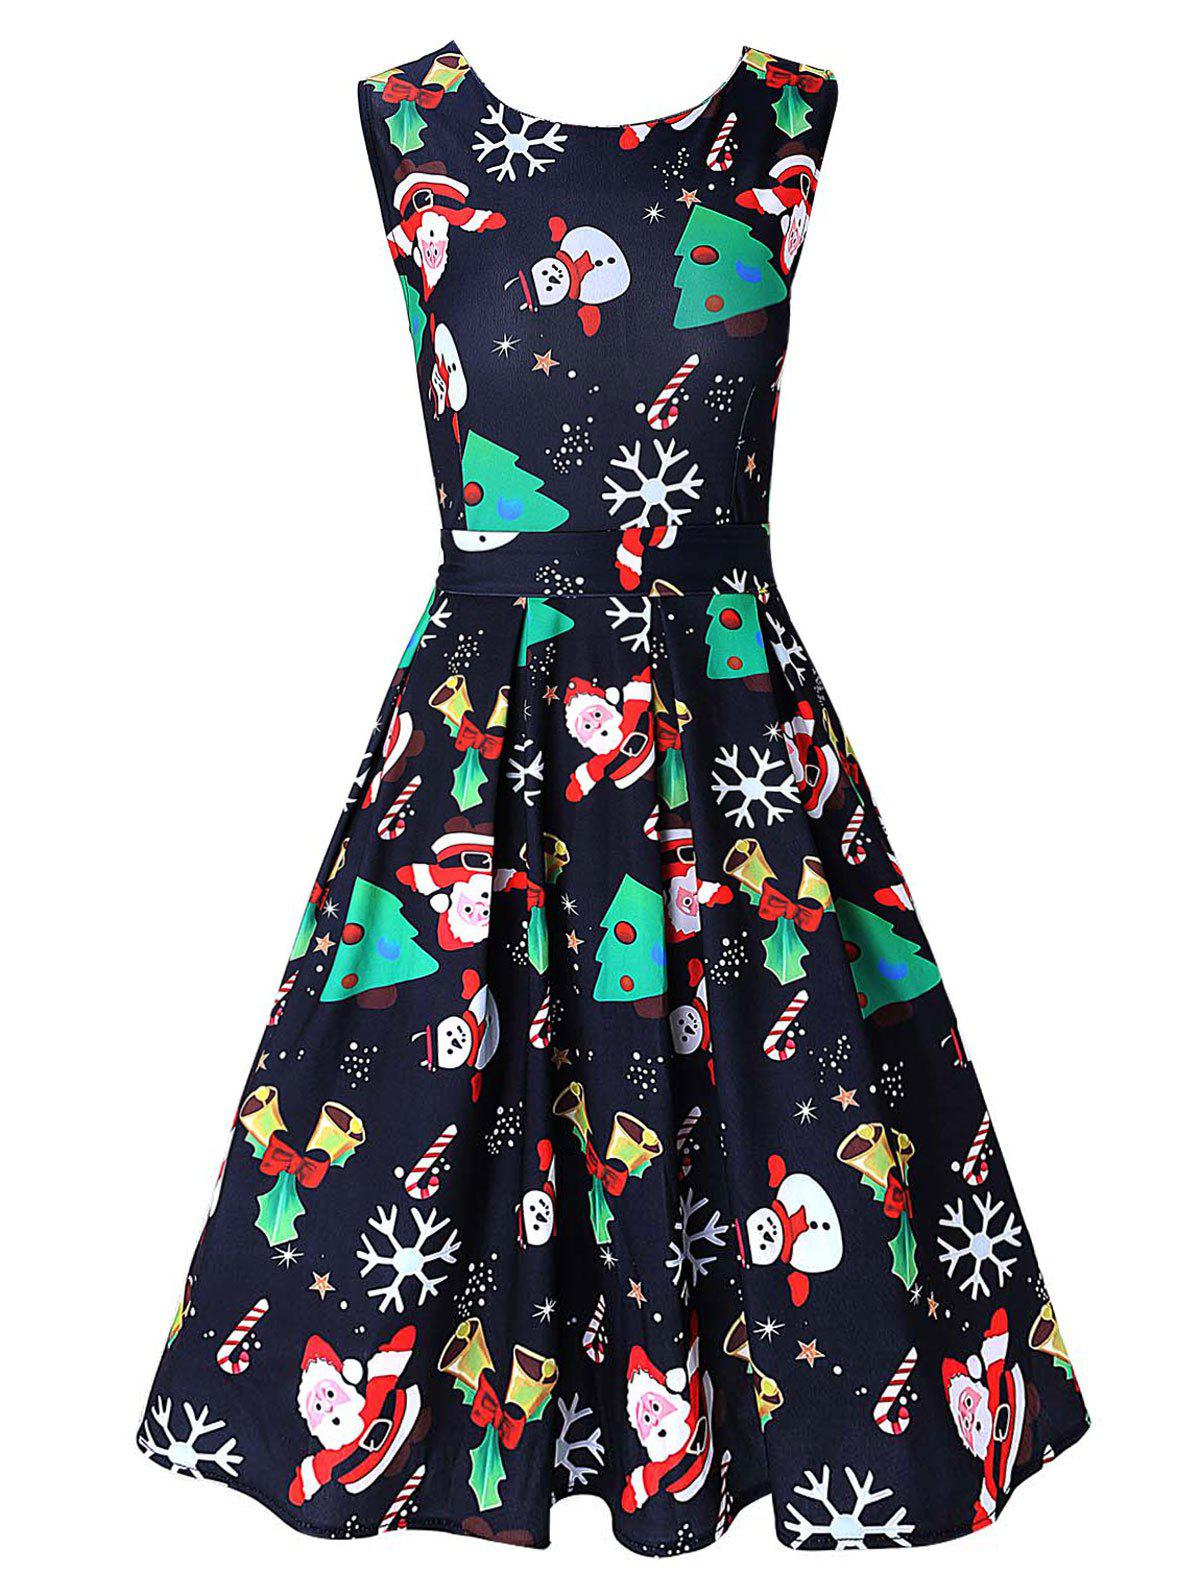 Vintage Santa Claus Print Christmas Skater DressWOMEN<br><br>Size: L; Color: PURPLISH BLUE; Style: Vintage; Material: Polyester,Spandex; Silhouette: A-Line; Dresses Length: Knee-Length; Neckline: Round Collar; Sleeve Length: Sleeveless; Pattern Type: Print; With Belt: No; Season: Fall,Spring; Weight: 0.4200kg; Package Contents: 1 x Dress;